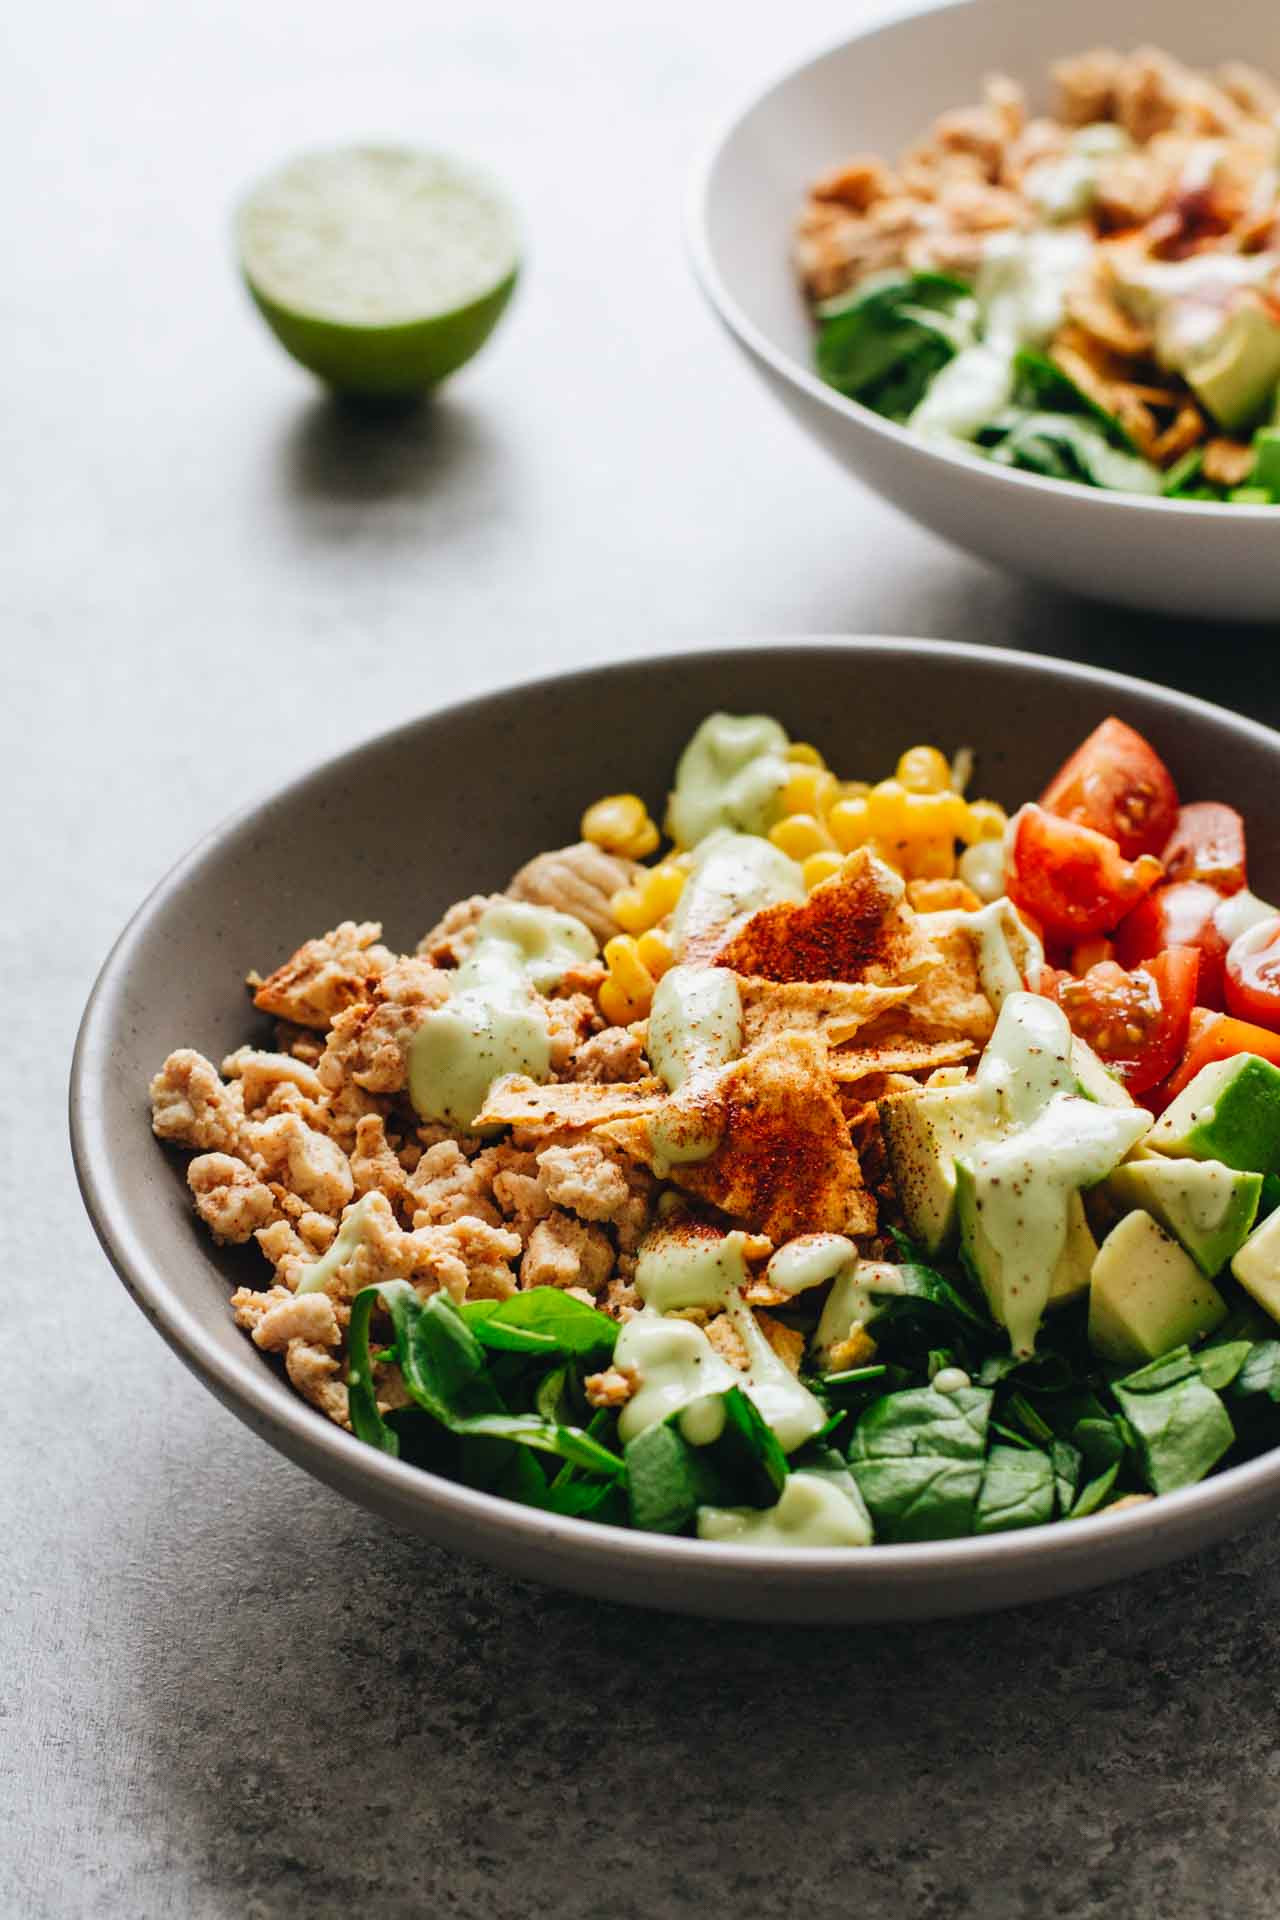 Healthy Taco Salad With Ground Turkey  Easy Healthy Taco Salad w Ground Turkey Jar Lemons